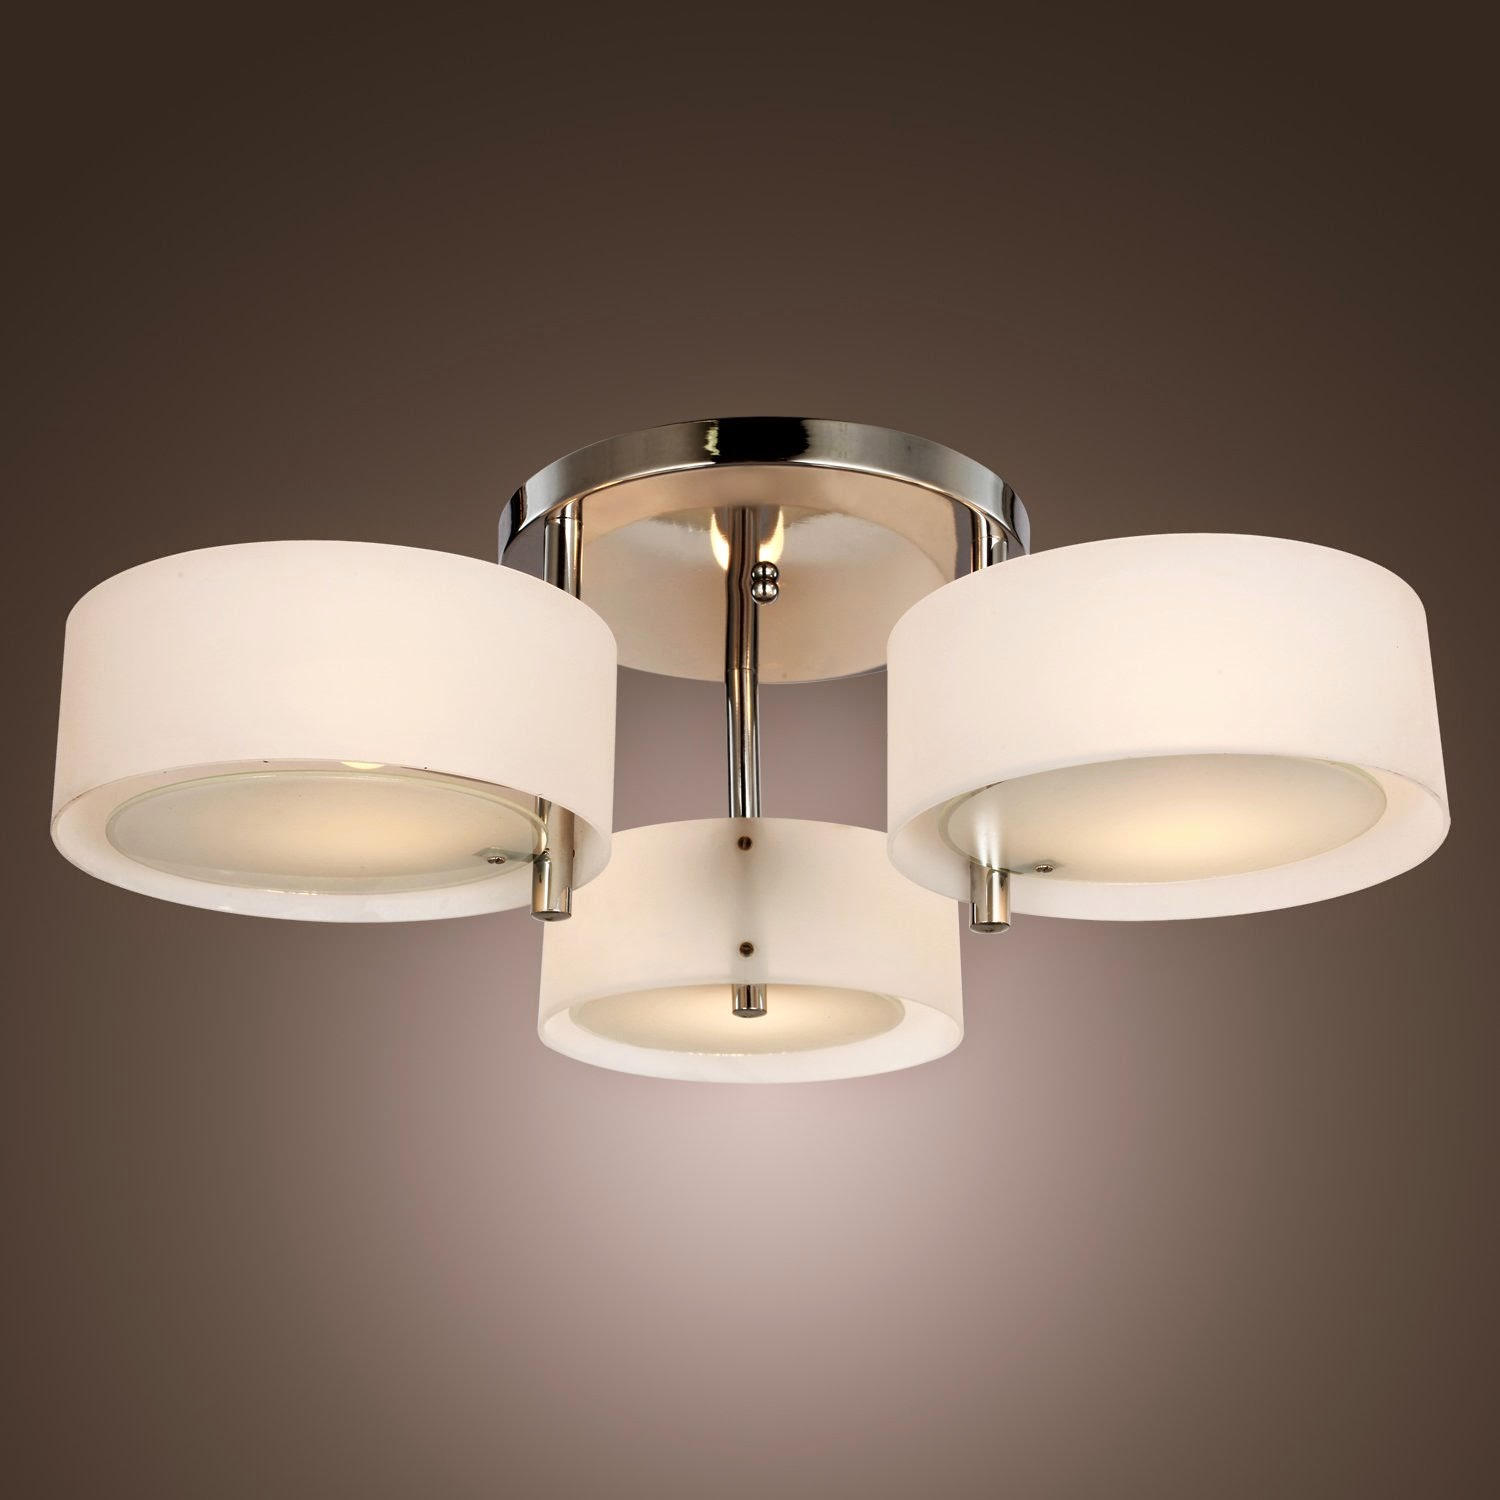 Ceiling light fixture with outlet - Ceiling lights and chandeliers ...